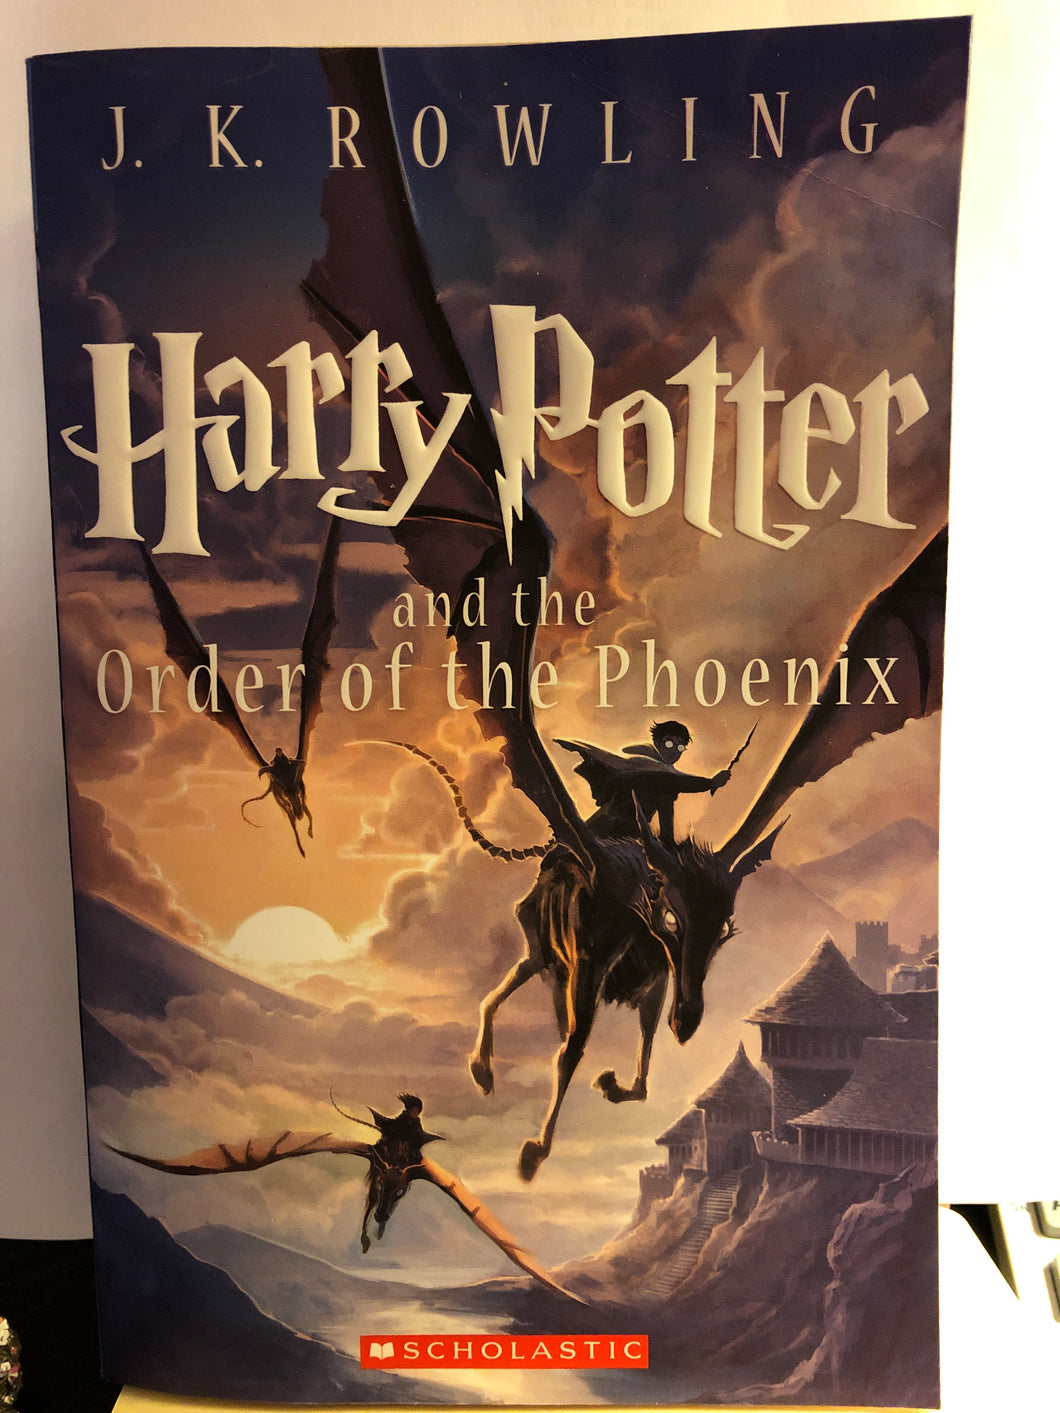 Harry Potter and the Order of the Phoenix  by J.K. Rowling  (Harry Potter #5)